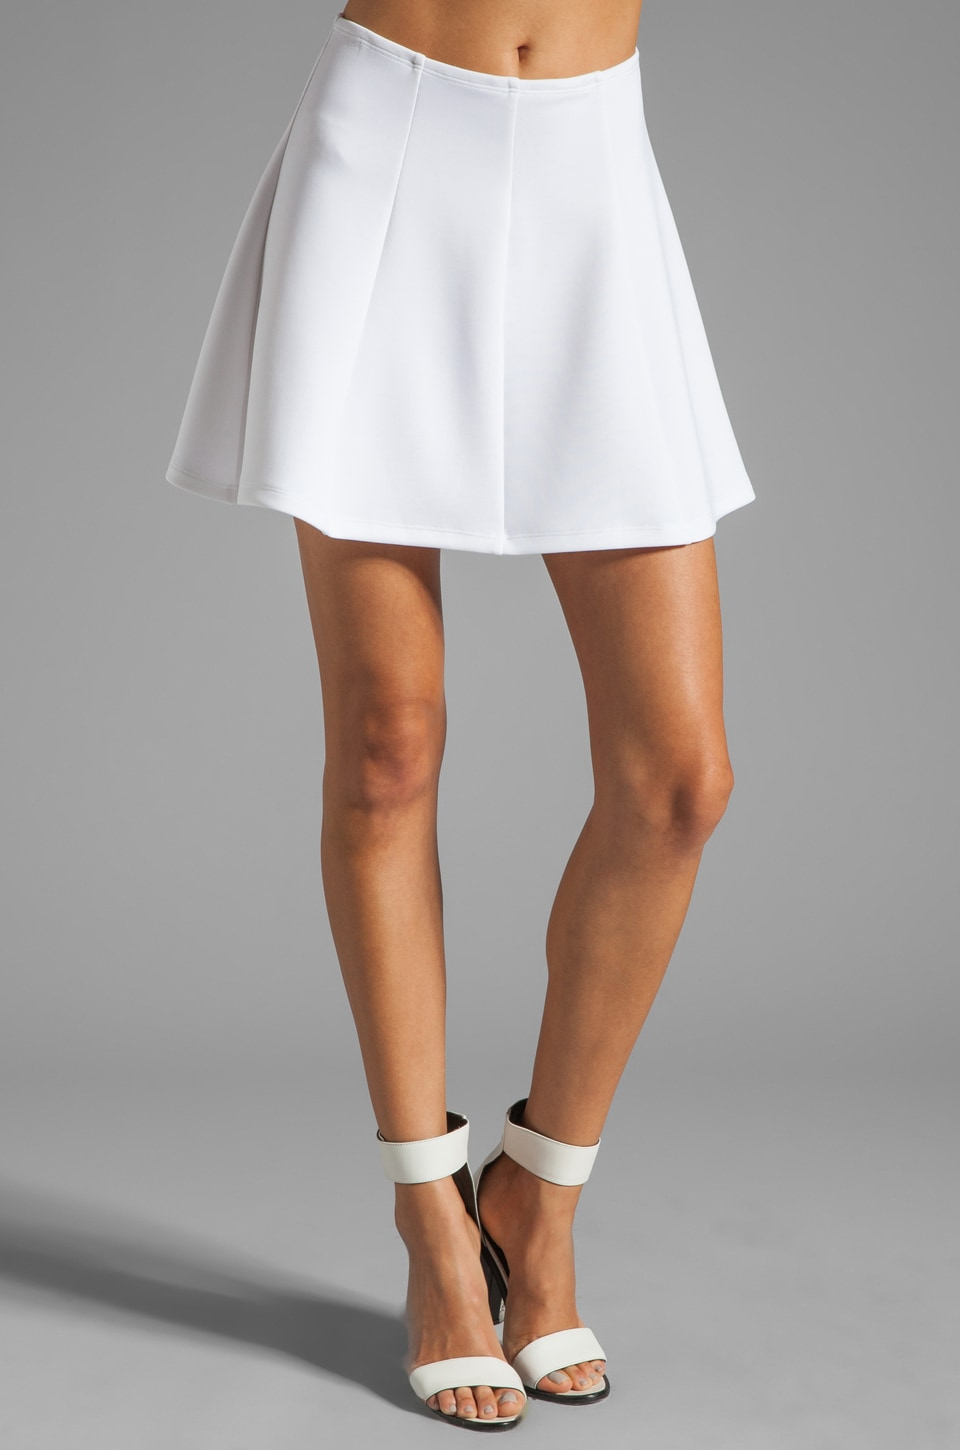 Boulee Luke Skirt in White